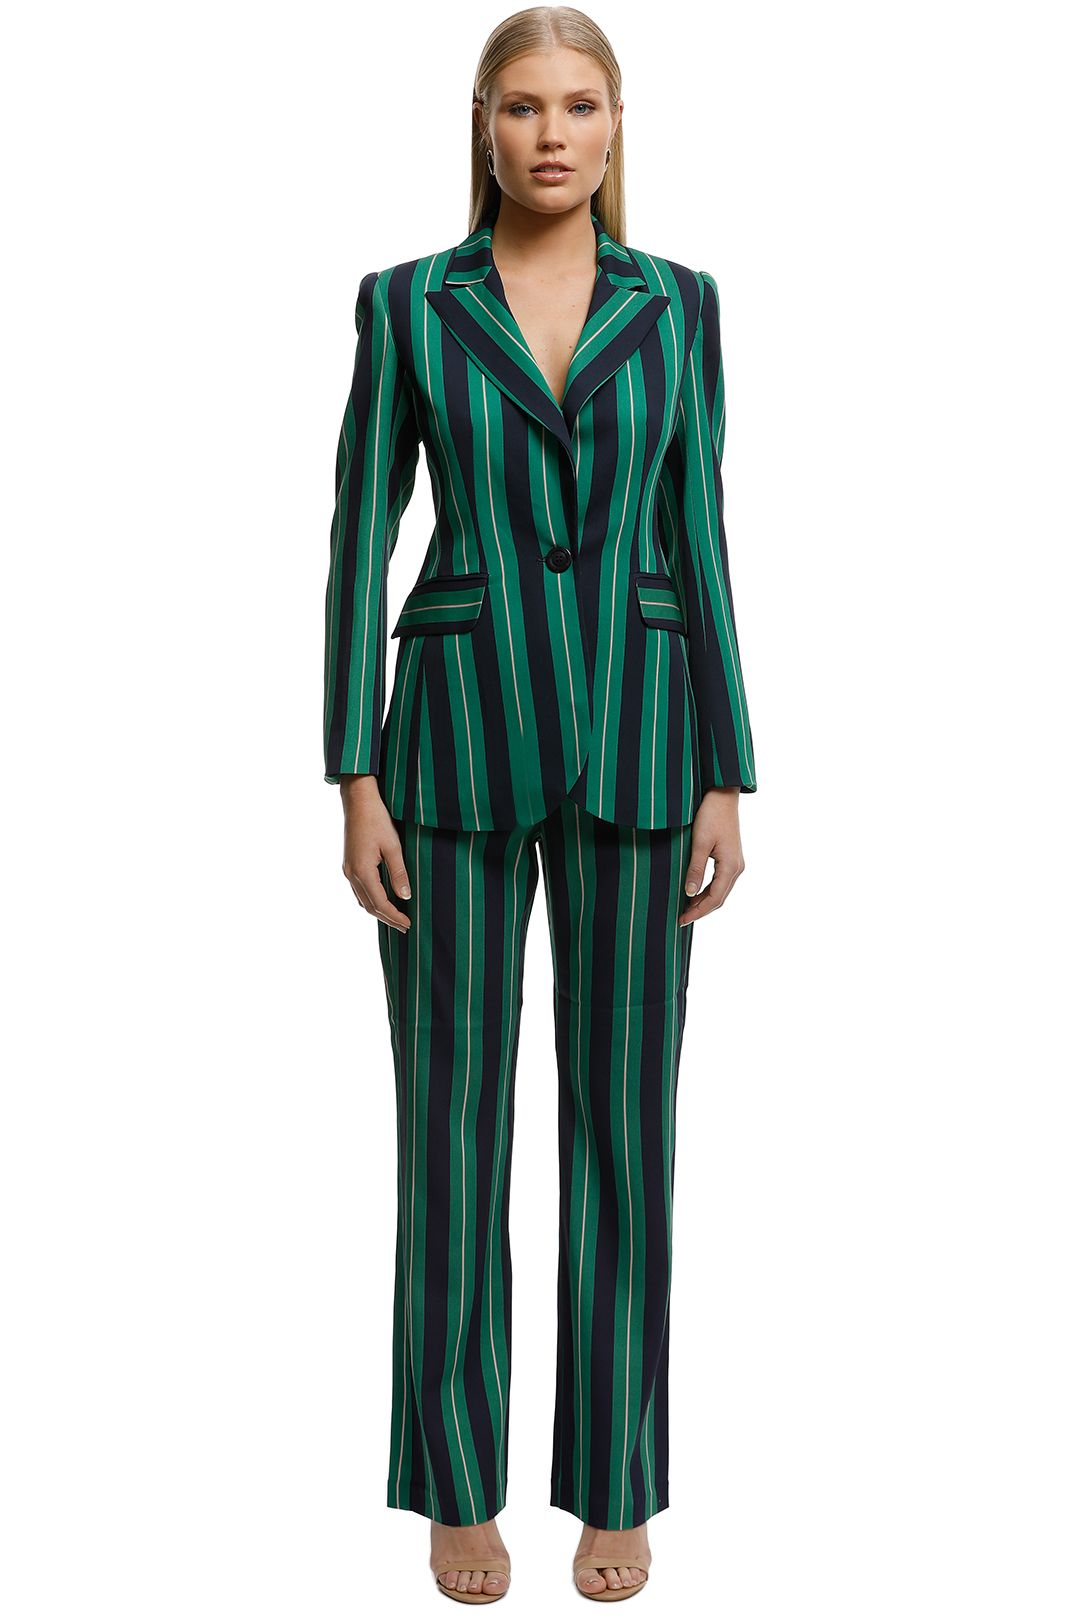 Moss-and-Spy-Gatsby-Blazer-and-Pant-Set-Green-Stripe-Front